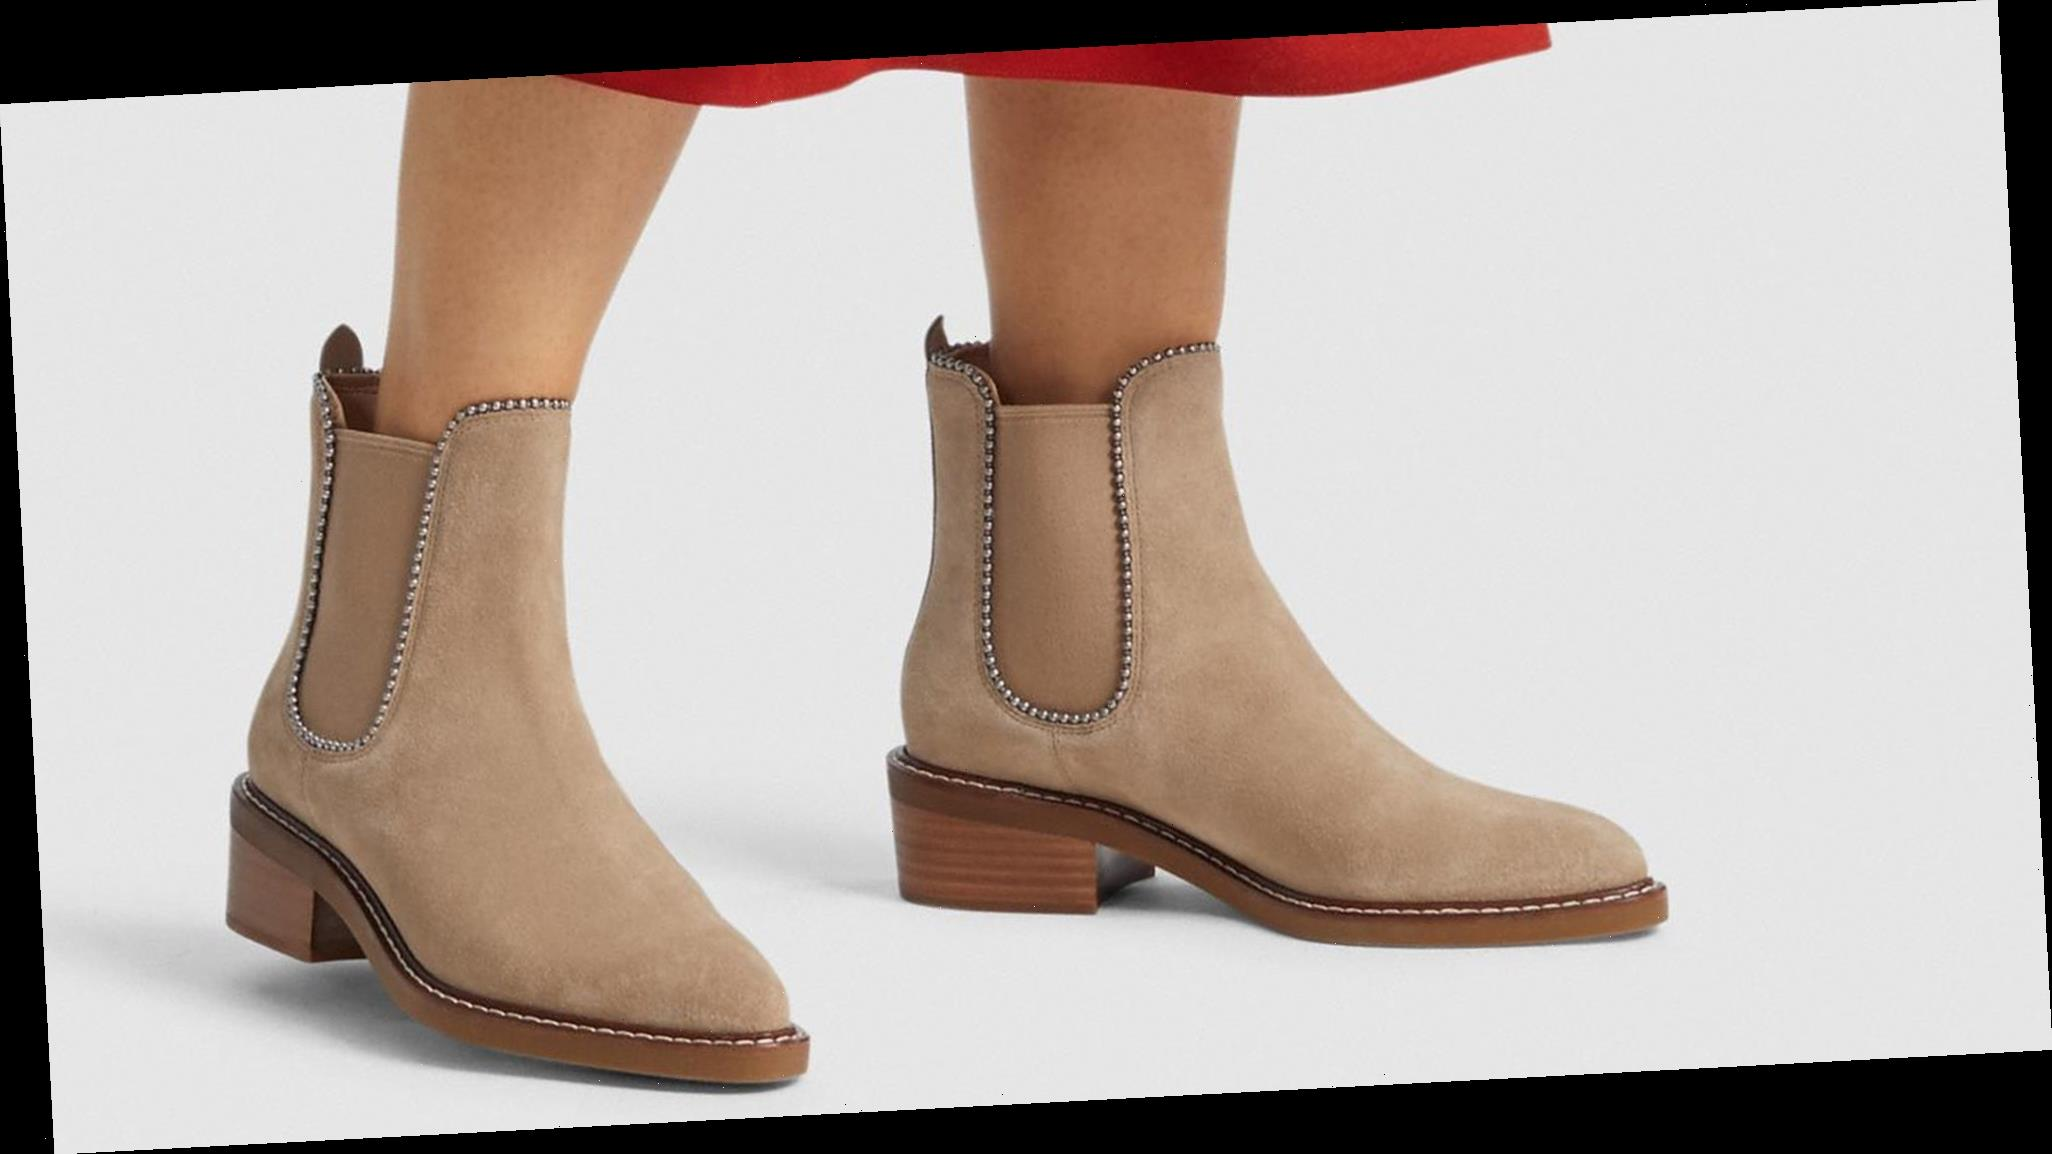 This Is Your Last Chance to Grab These Coach Booties for 50% Off